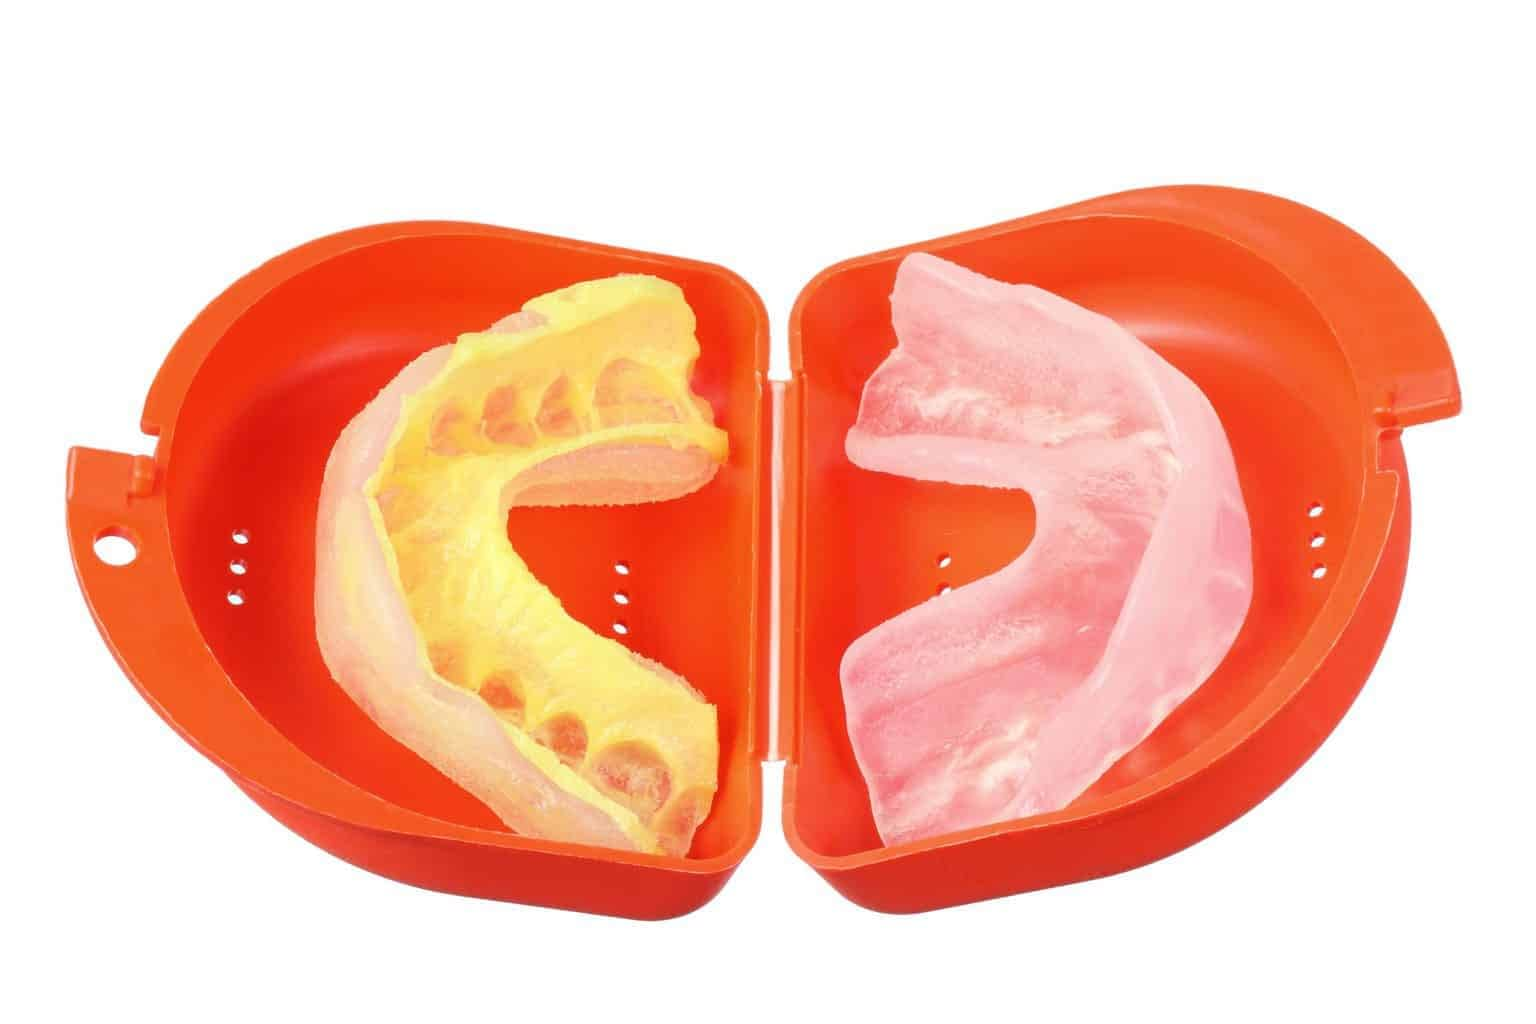 mouthguard for upper and lower teeth